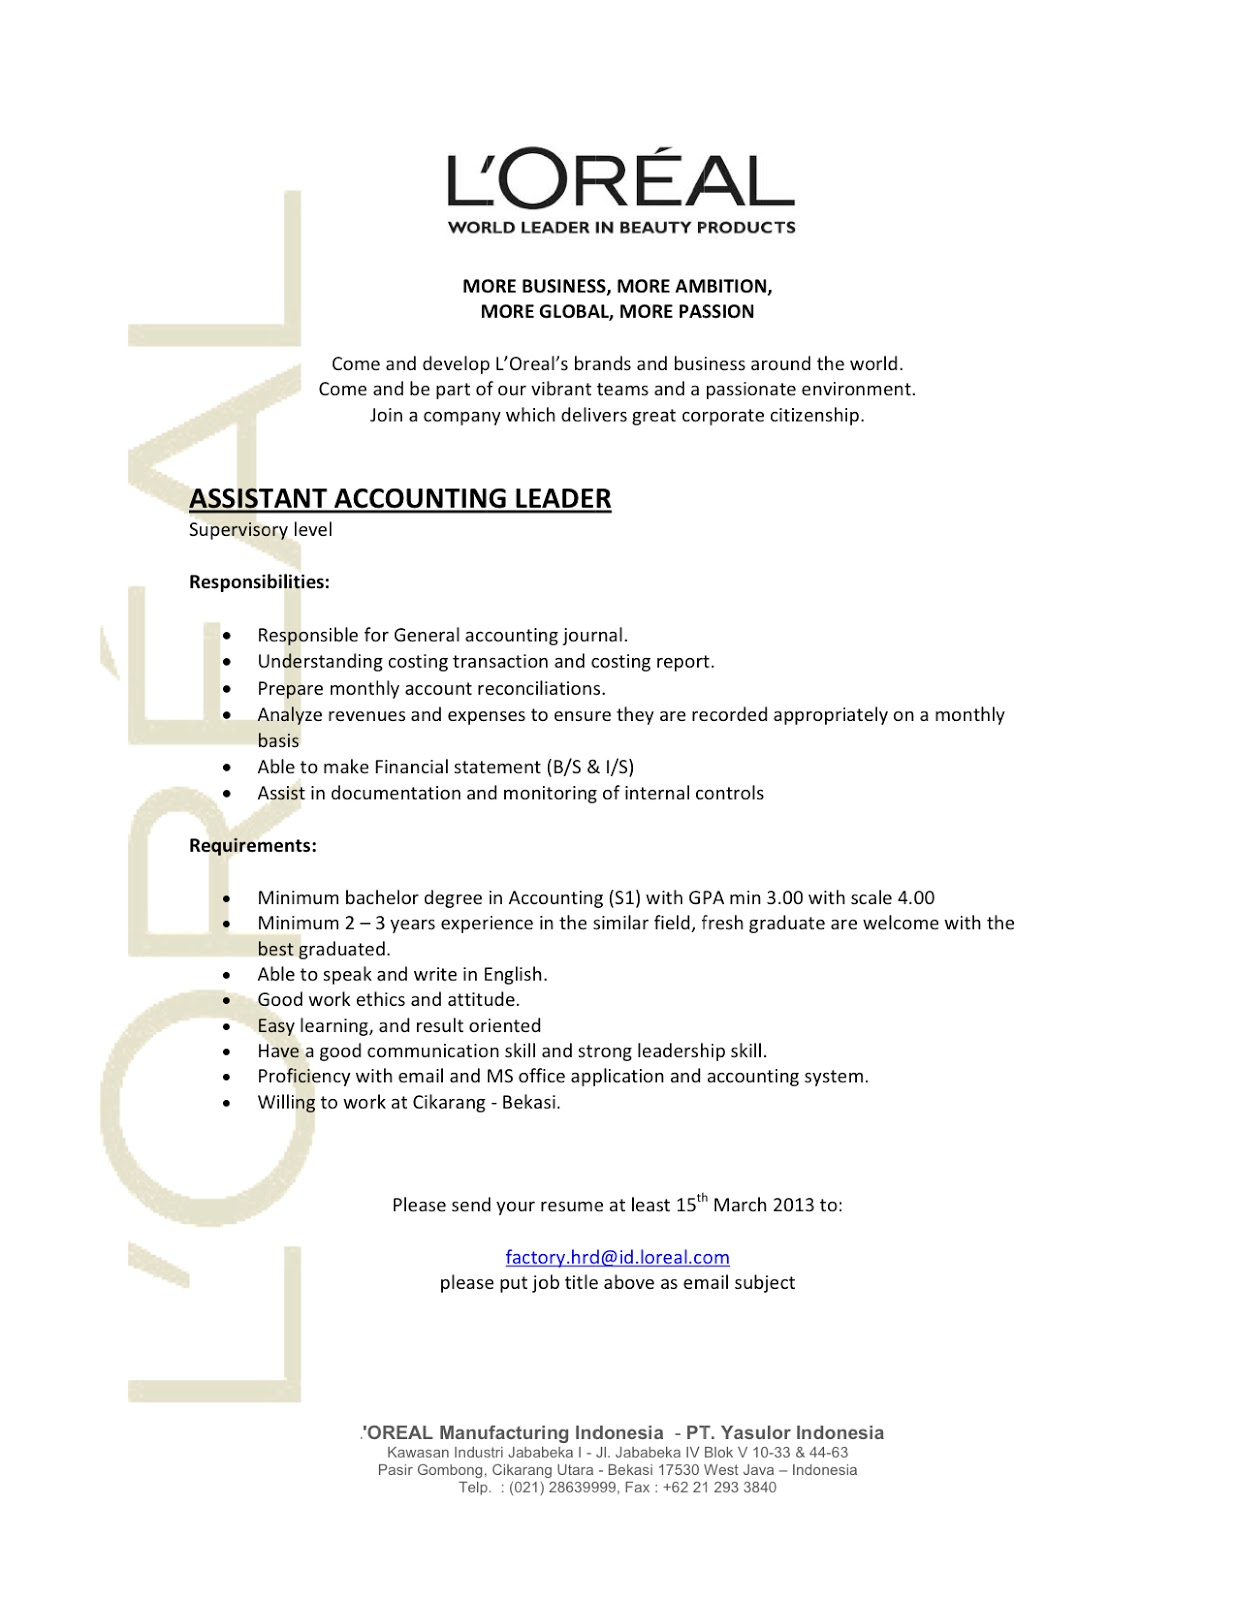 Contoh Application Letter And Curriculum Vitae